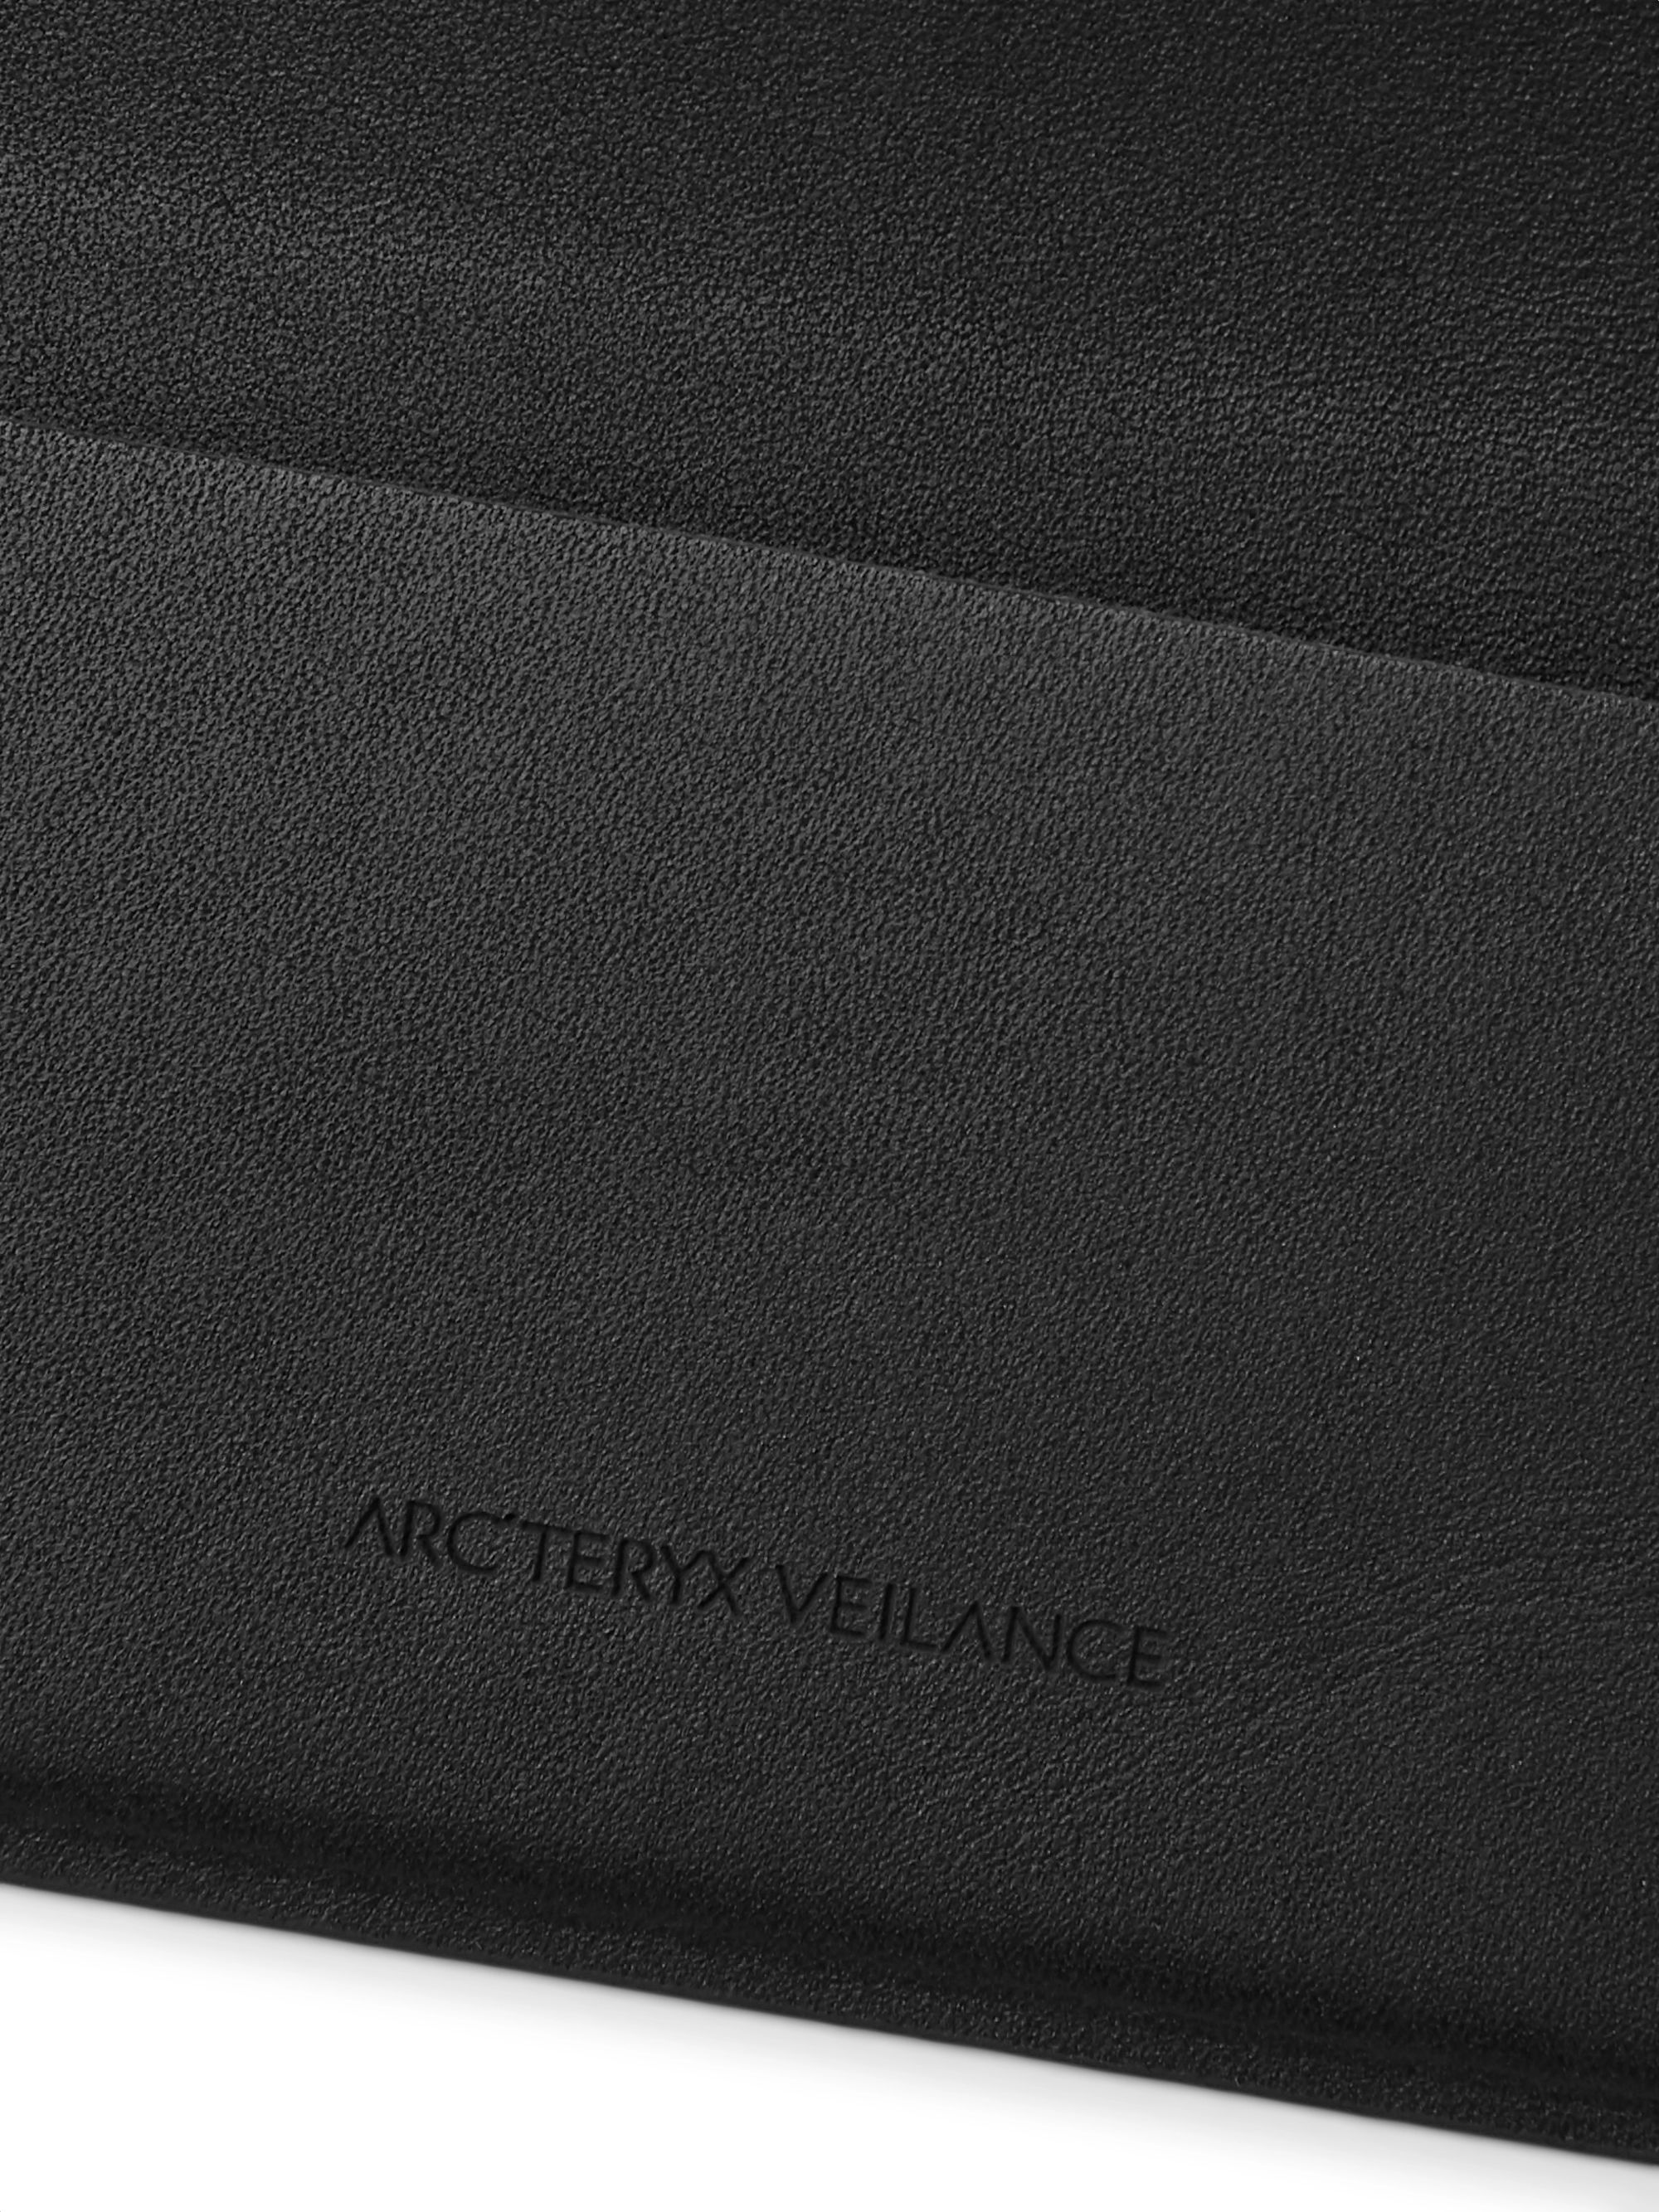 Veilance Casing Leather Cardholder